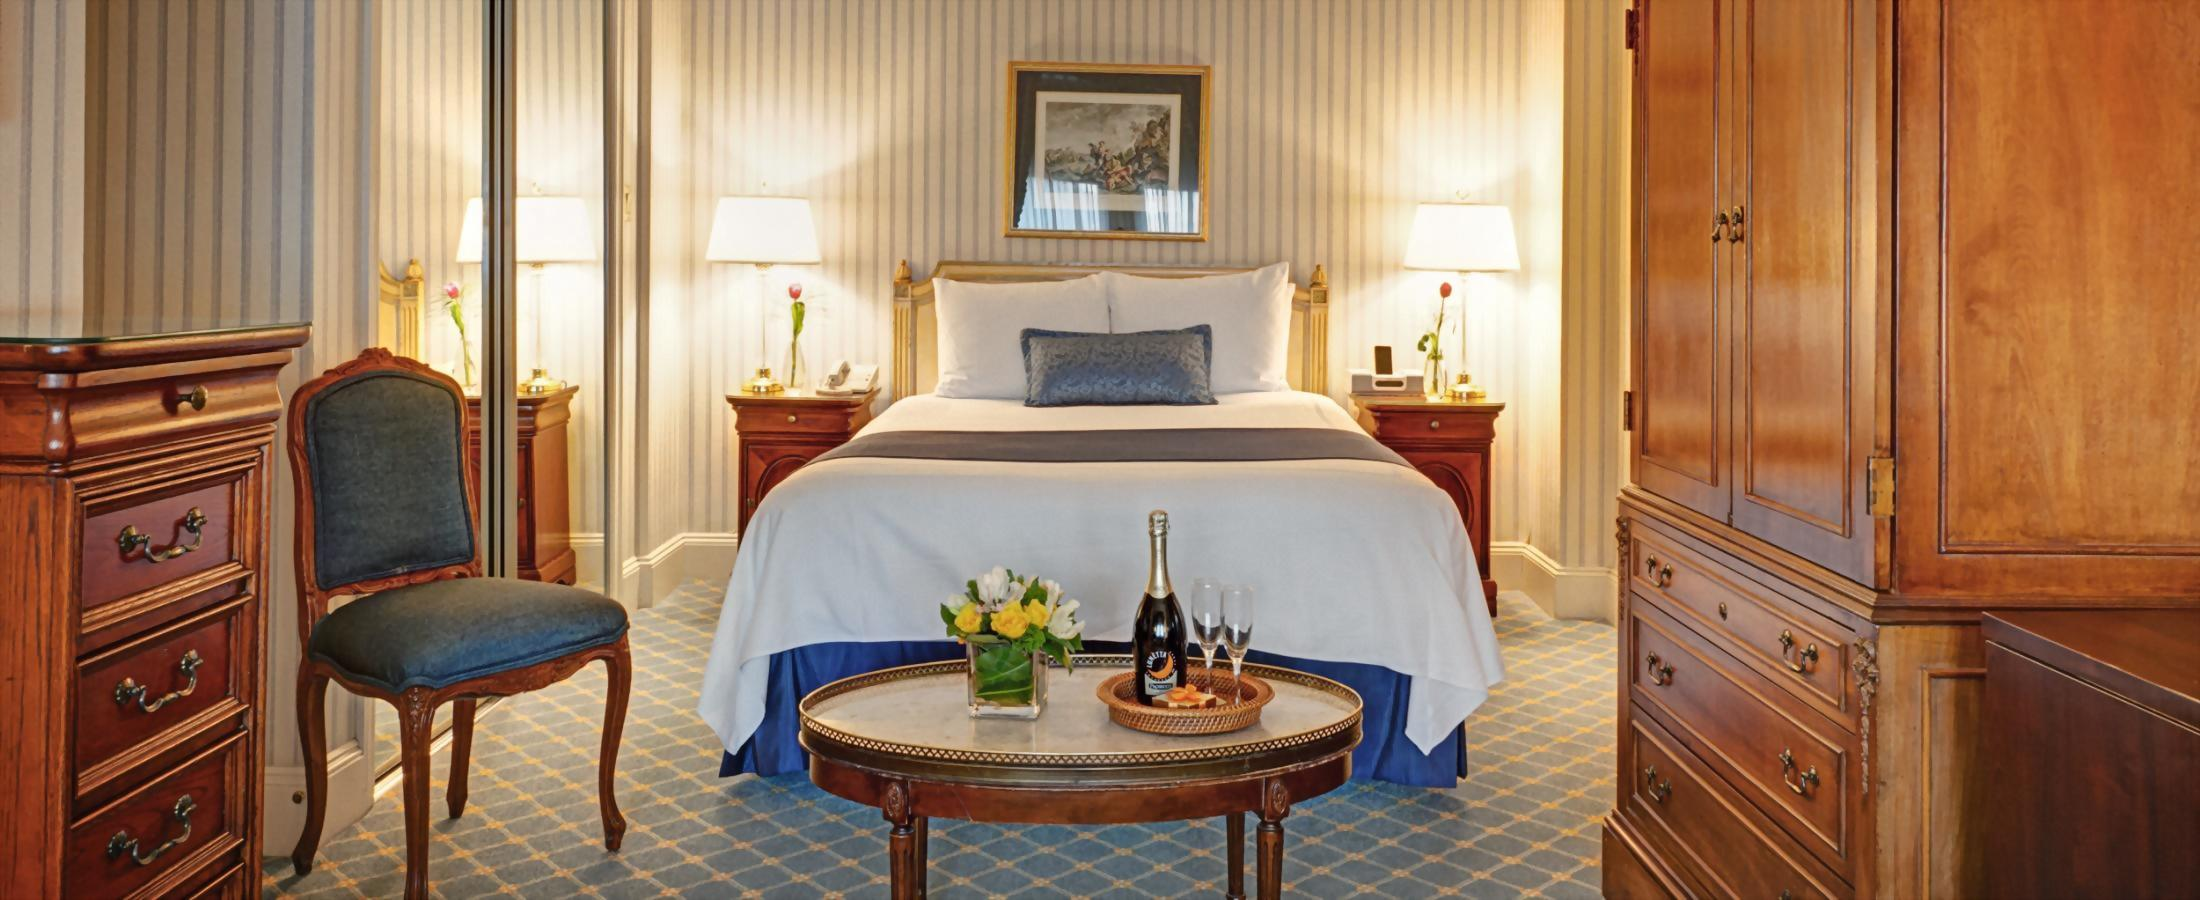 Deluxe Queen Room at Hotel Elysée has one queen bed and is approximately 300 square feet.